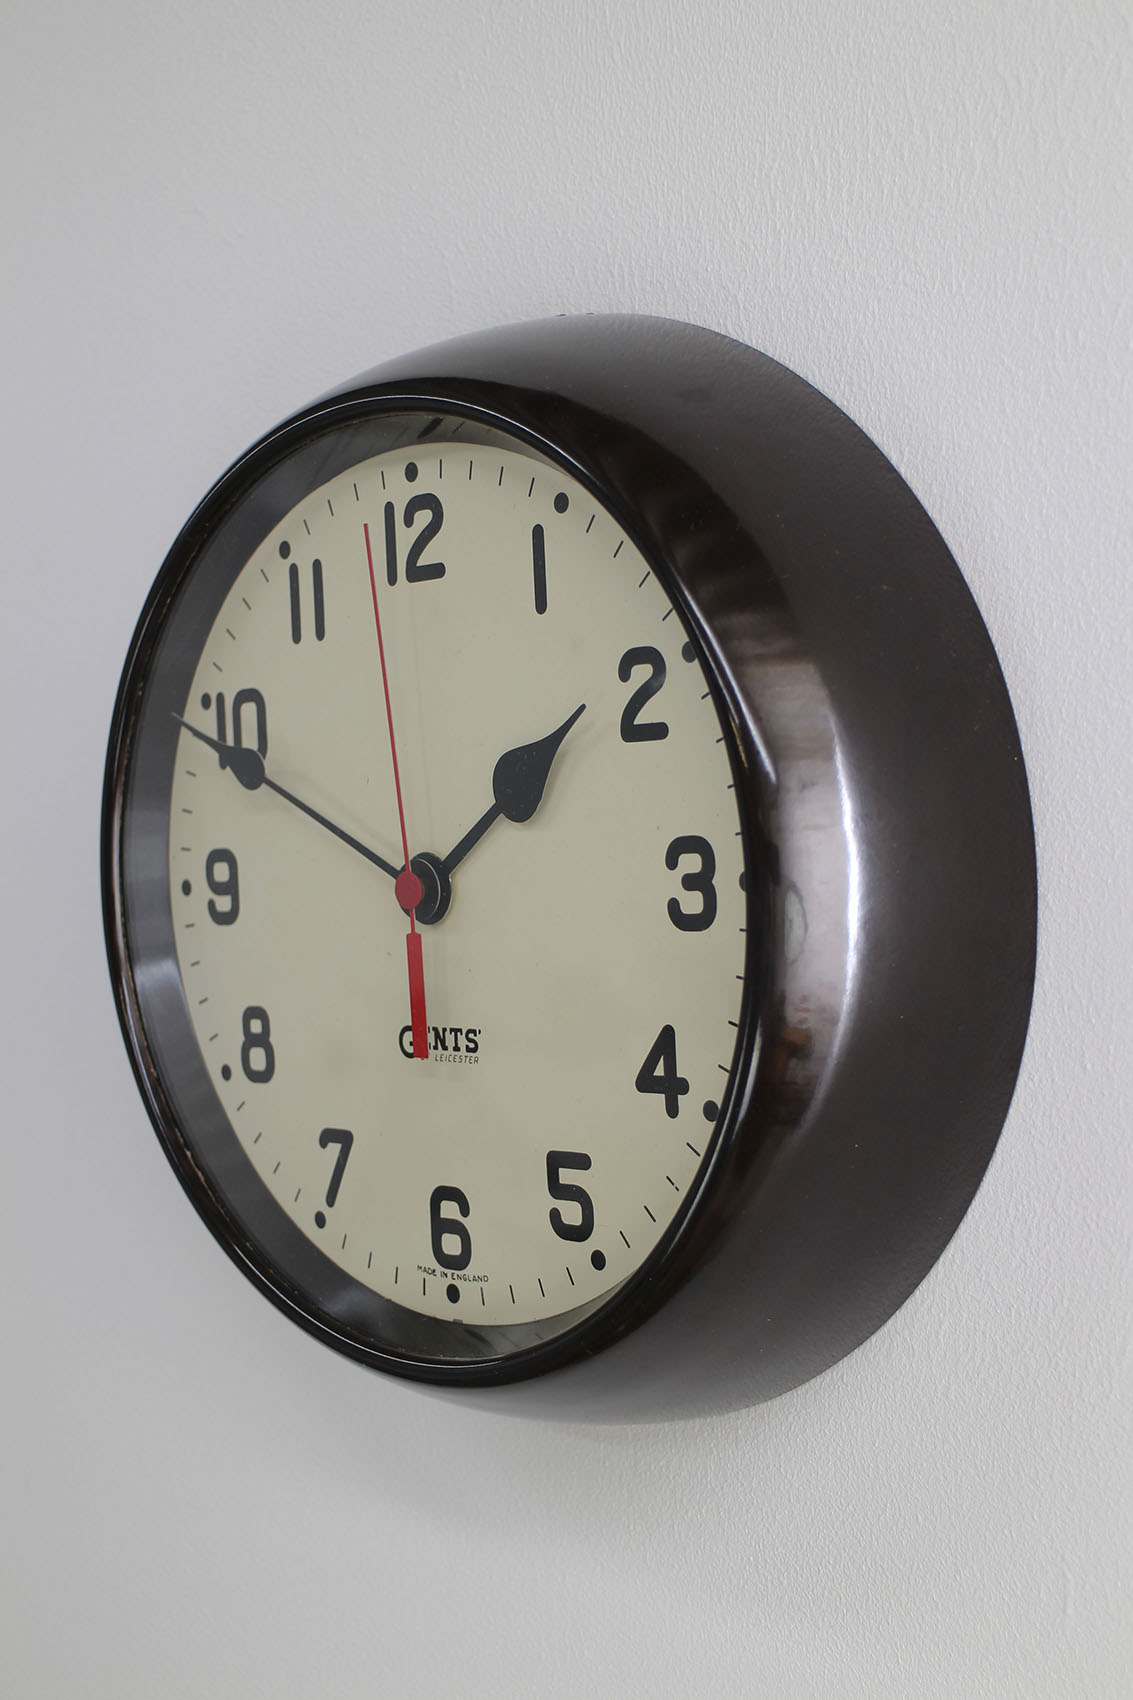 Vintage Gents Of Leicester Wall Clock Cooling Amp Cooling